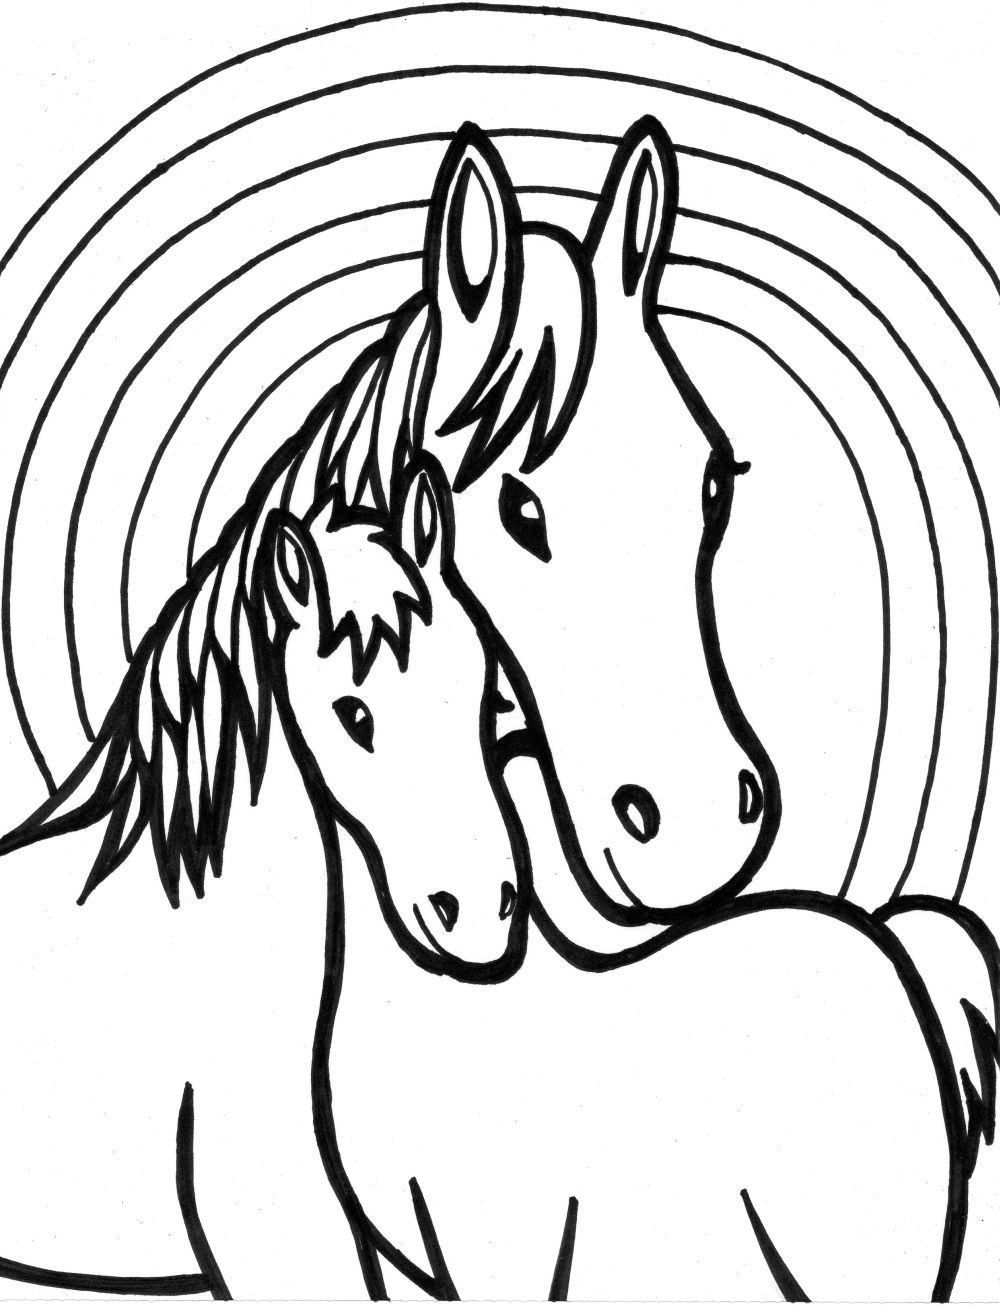 coloring printouts for girls 40 free coloring pages for girls for girls printouts coloring